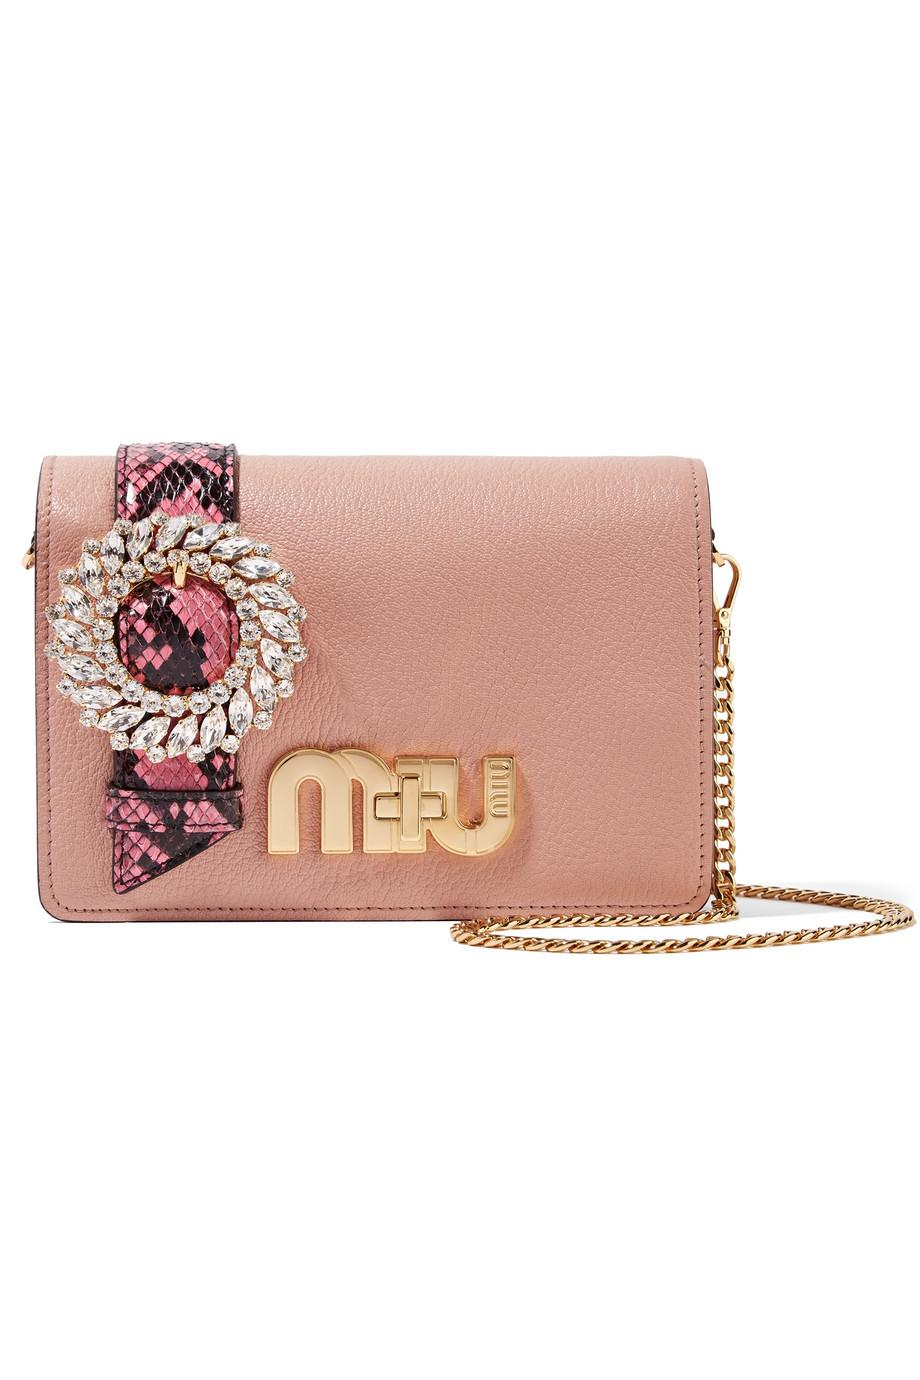 Miu Miu My Miu Small Matelasse Snake-Trim Clutch Bag HKupSQn